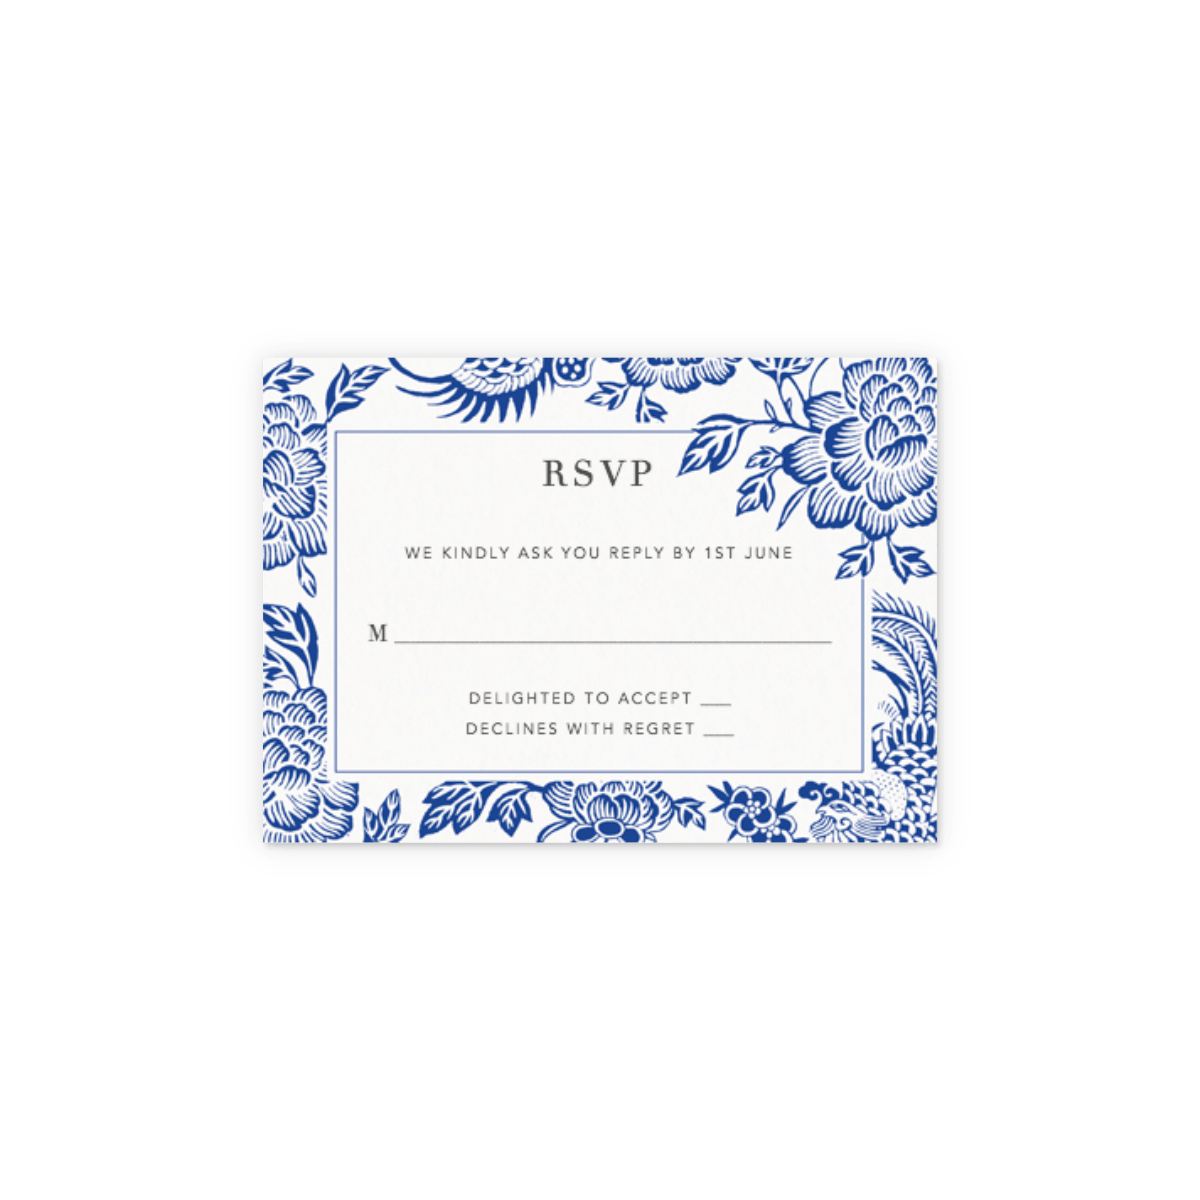 Https%3a%2f%2fwww.papier.com%2fproduct image%2f34281%2f13%2fornate blue florals 8574 rsvp 1519314573.png?ixlib=rb 1.1